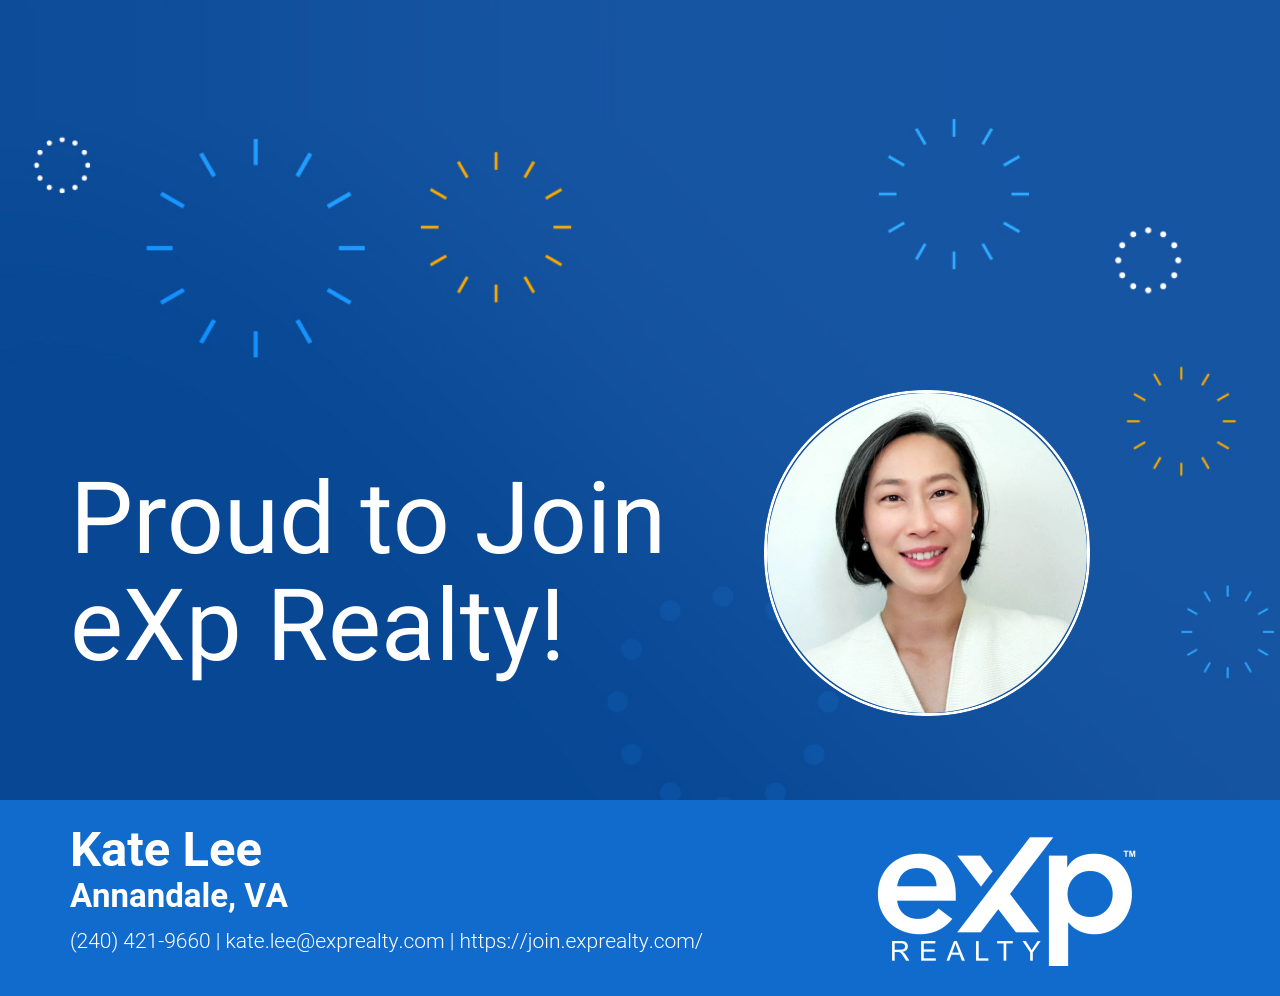 Kate Lee Joined eXp Realty!